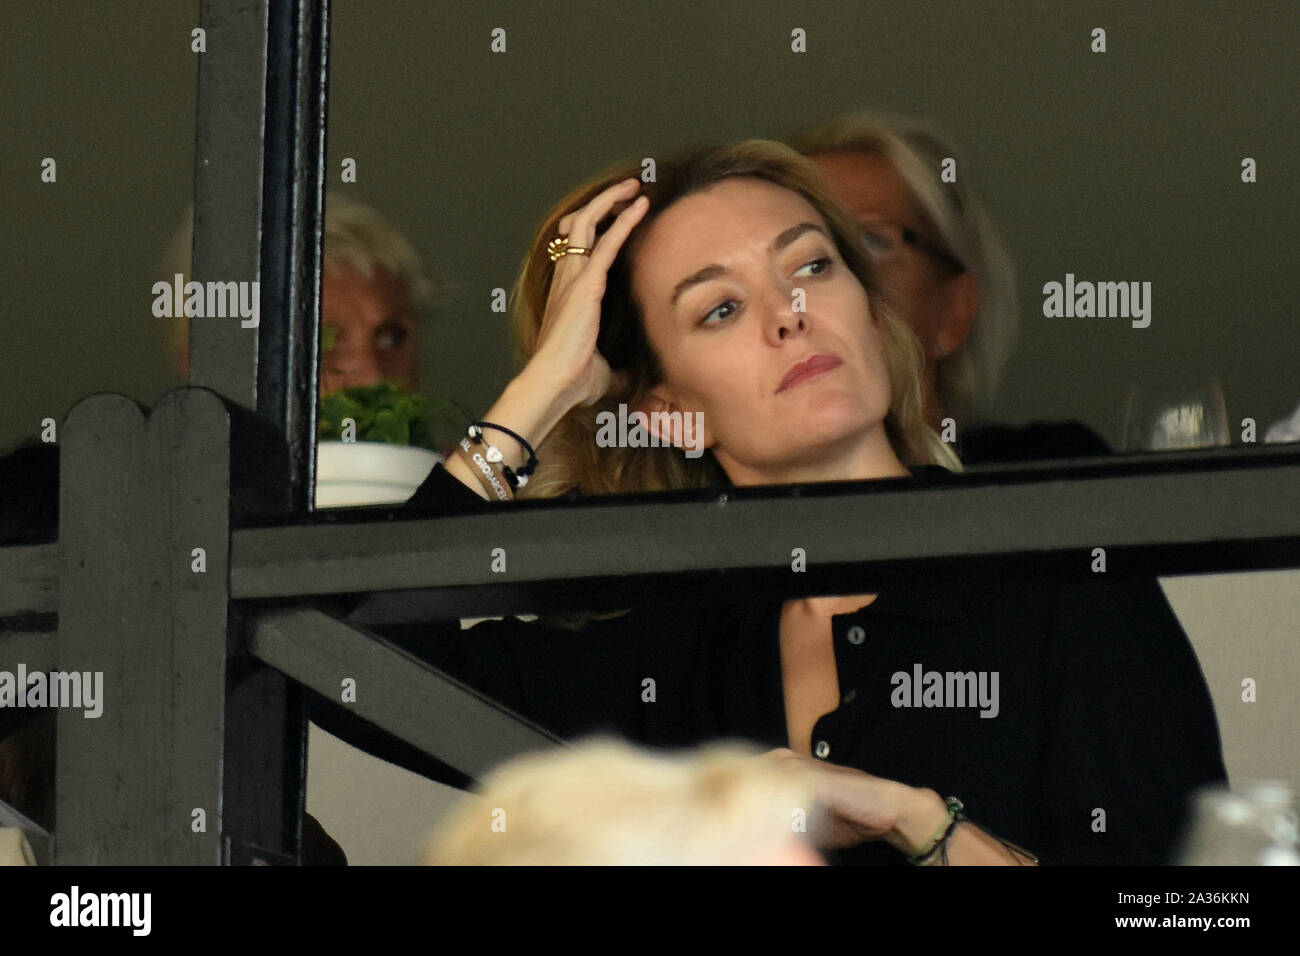 Barcelona, Spain. 05th Oct, 2019. The daughter of Amancio Ortega and heiress of the Inditex Group, Marta Ortega at the Longines FEI Jumping Nations Cup Final in Barcelona CSIO 2019. Credit: SOPA Images Limited/Alamy Live News Stock Photo